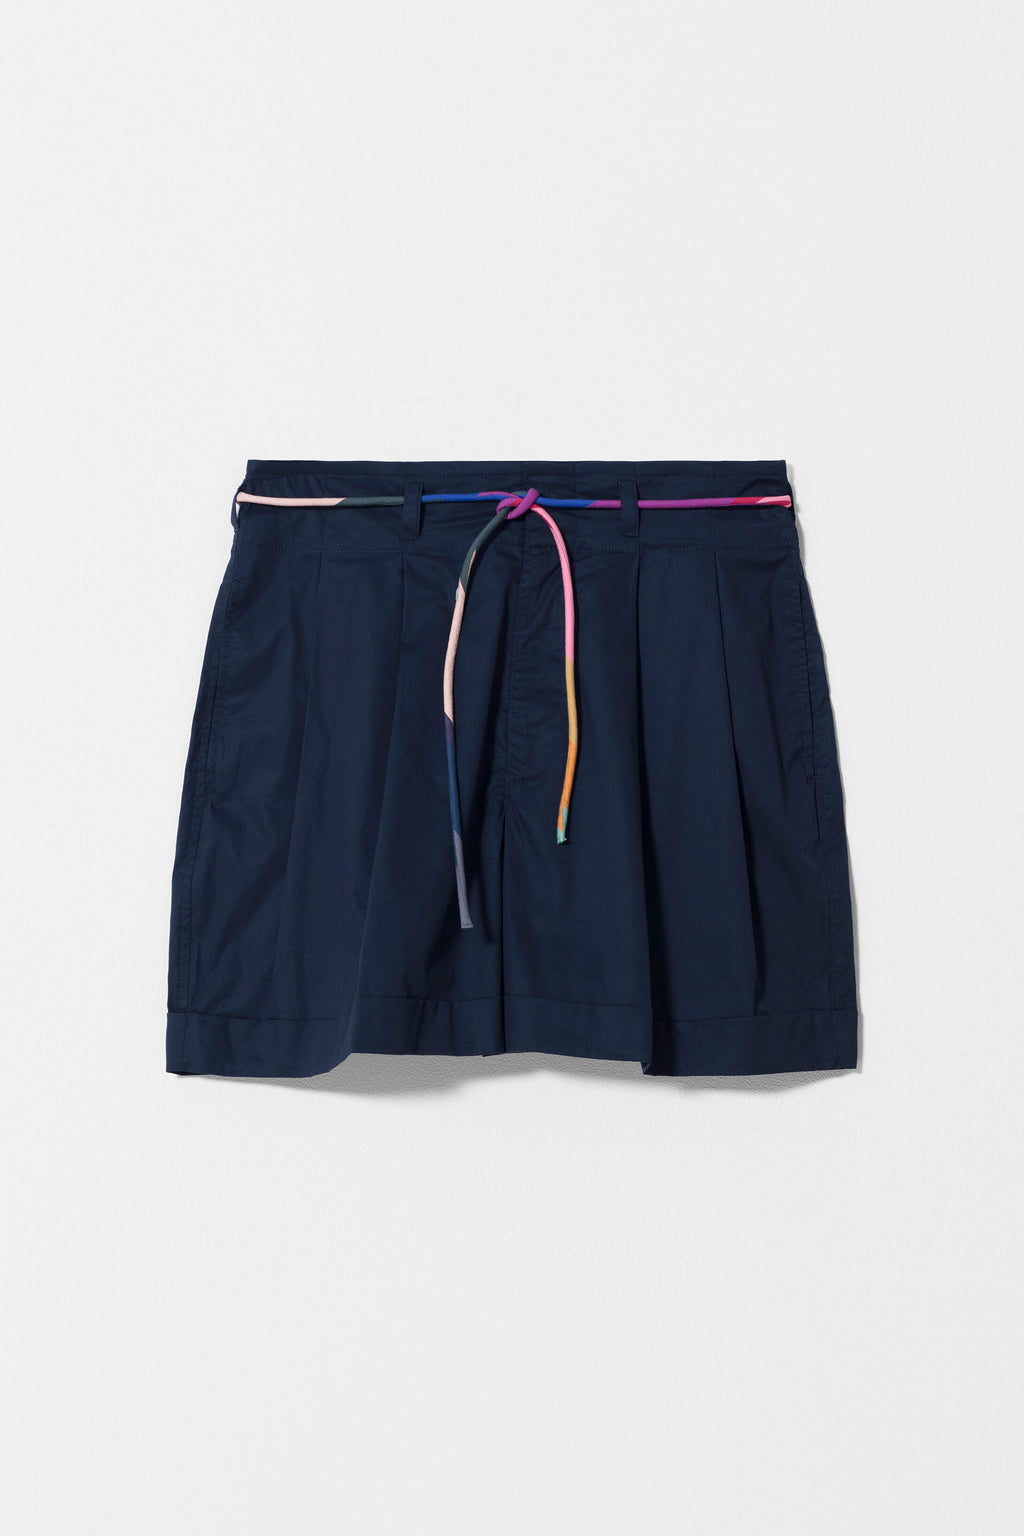 ELK The Label - Nyland Shorts online at PAYA boutique